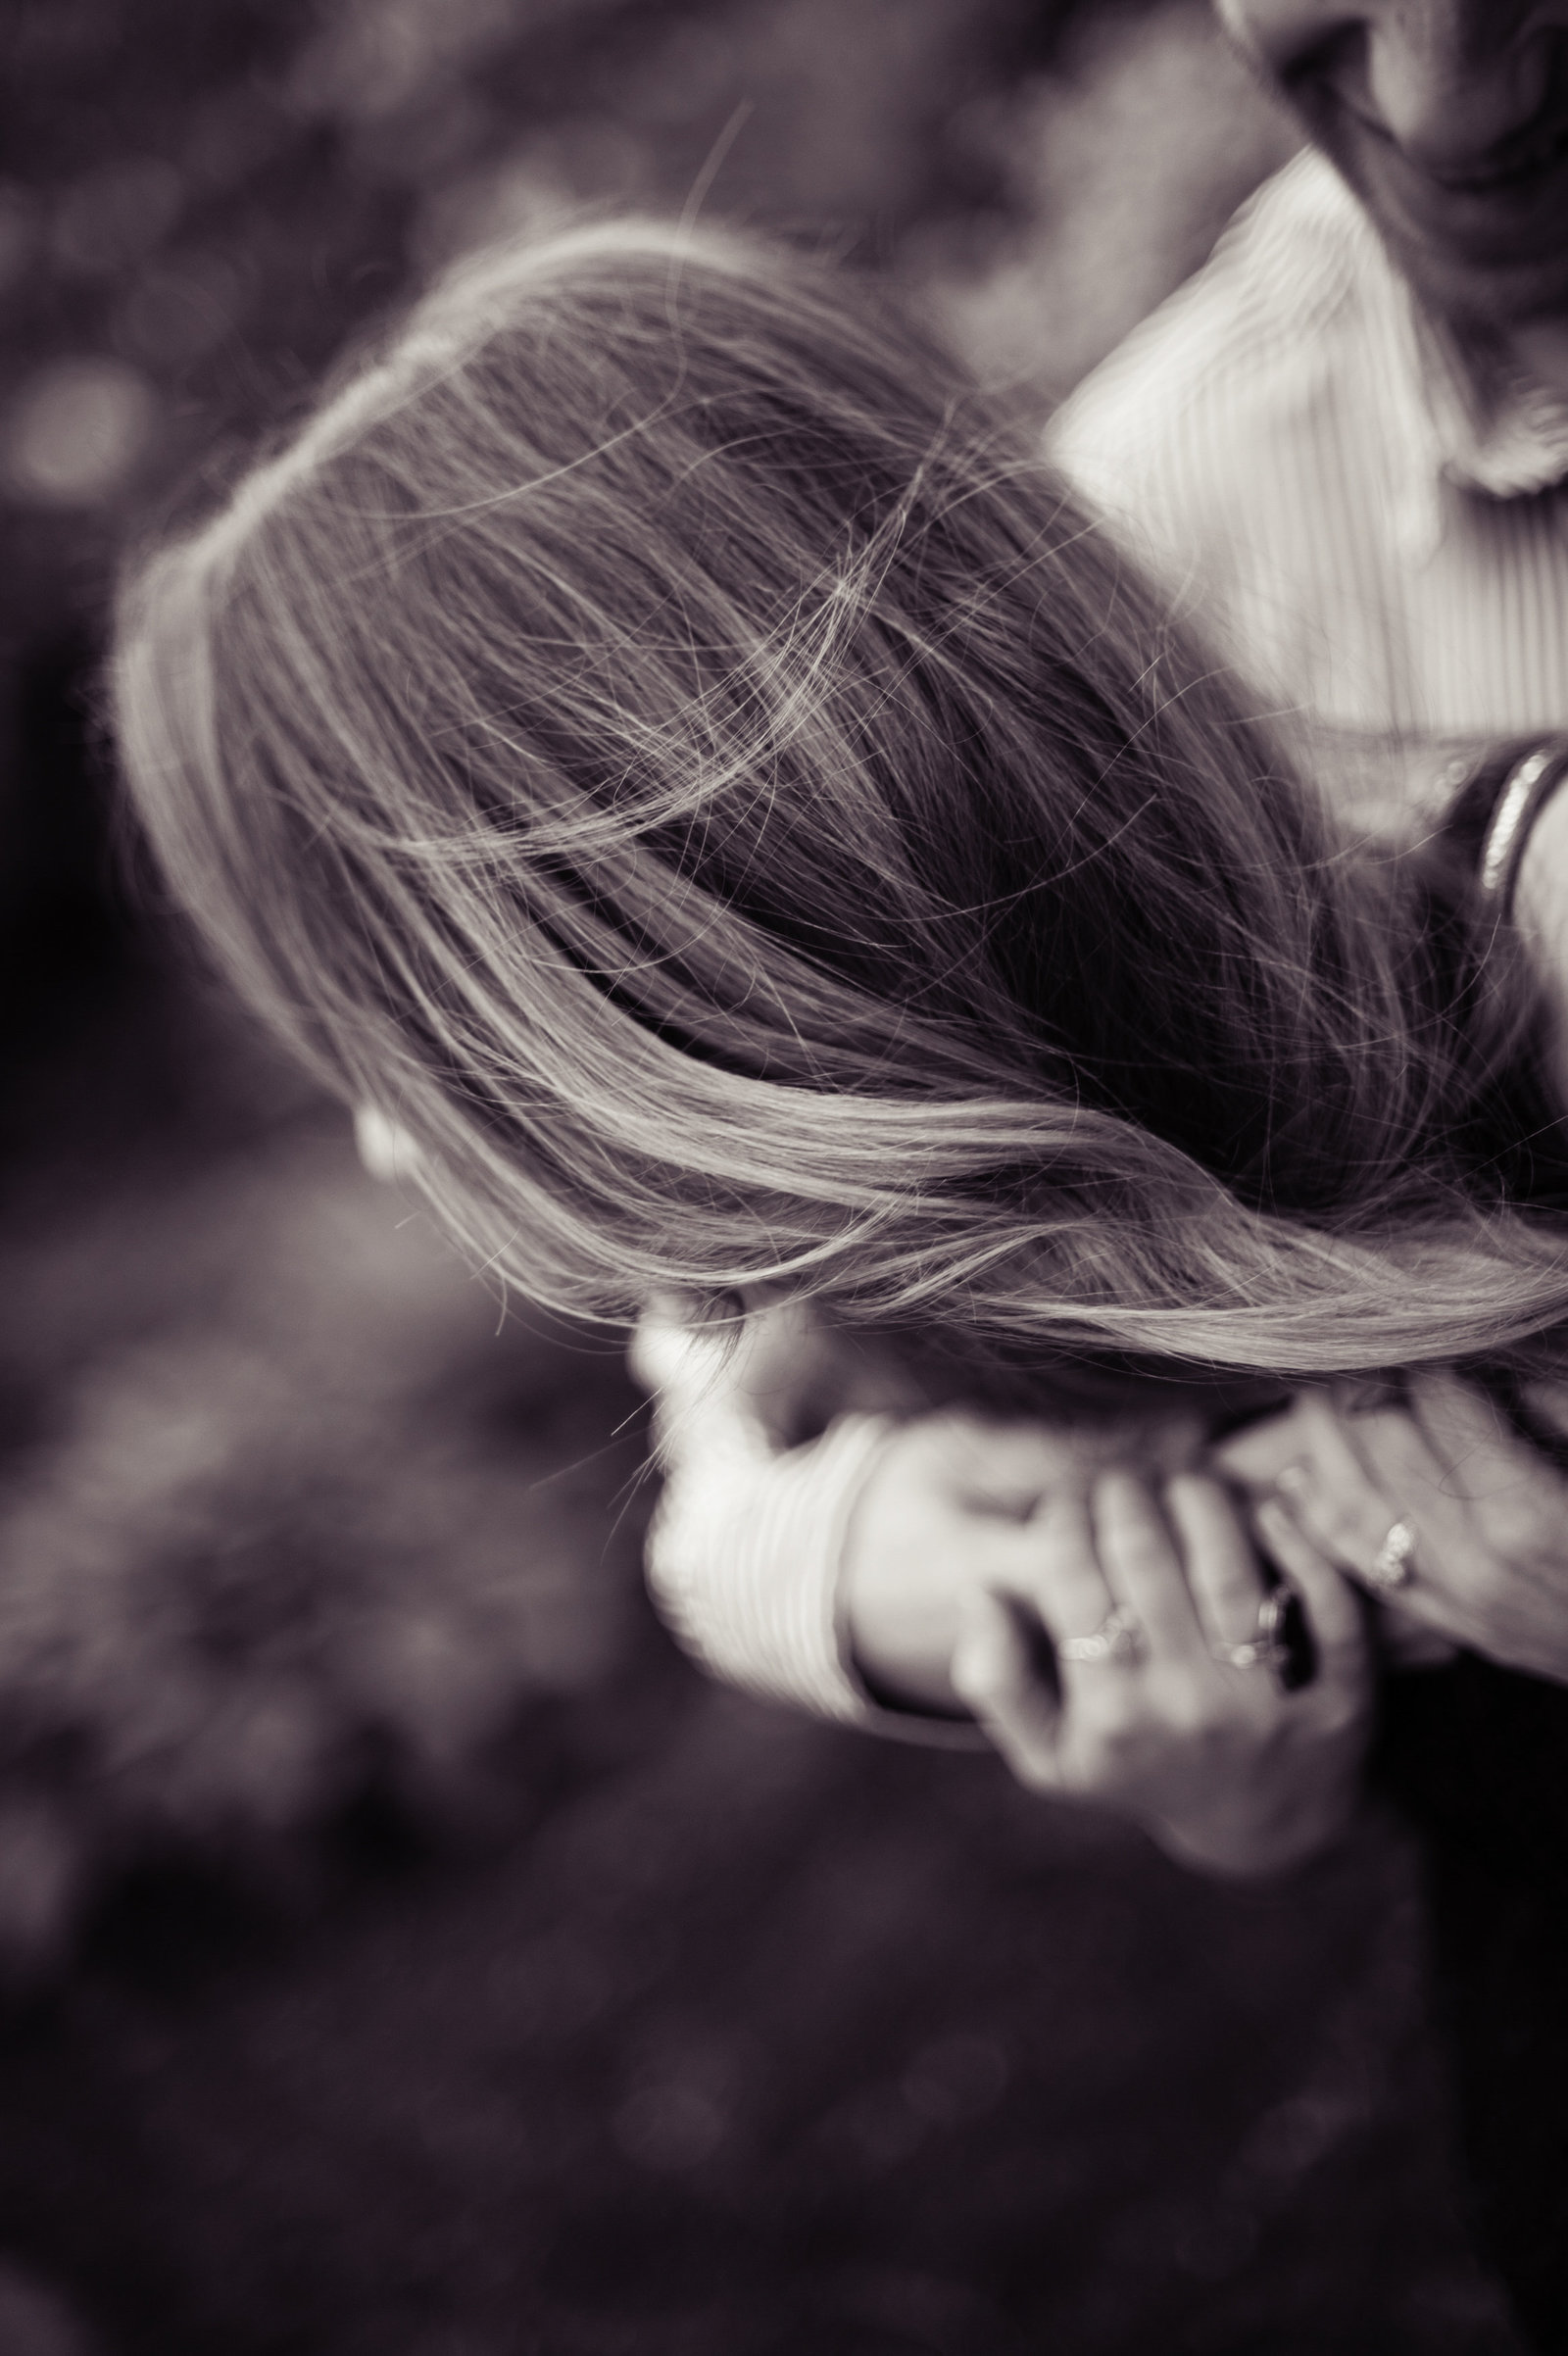 a girl's hair blows in the wind as her fiance hugs her from behind